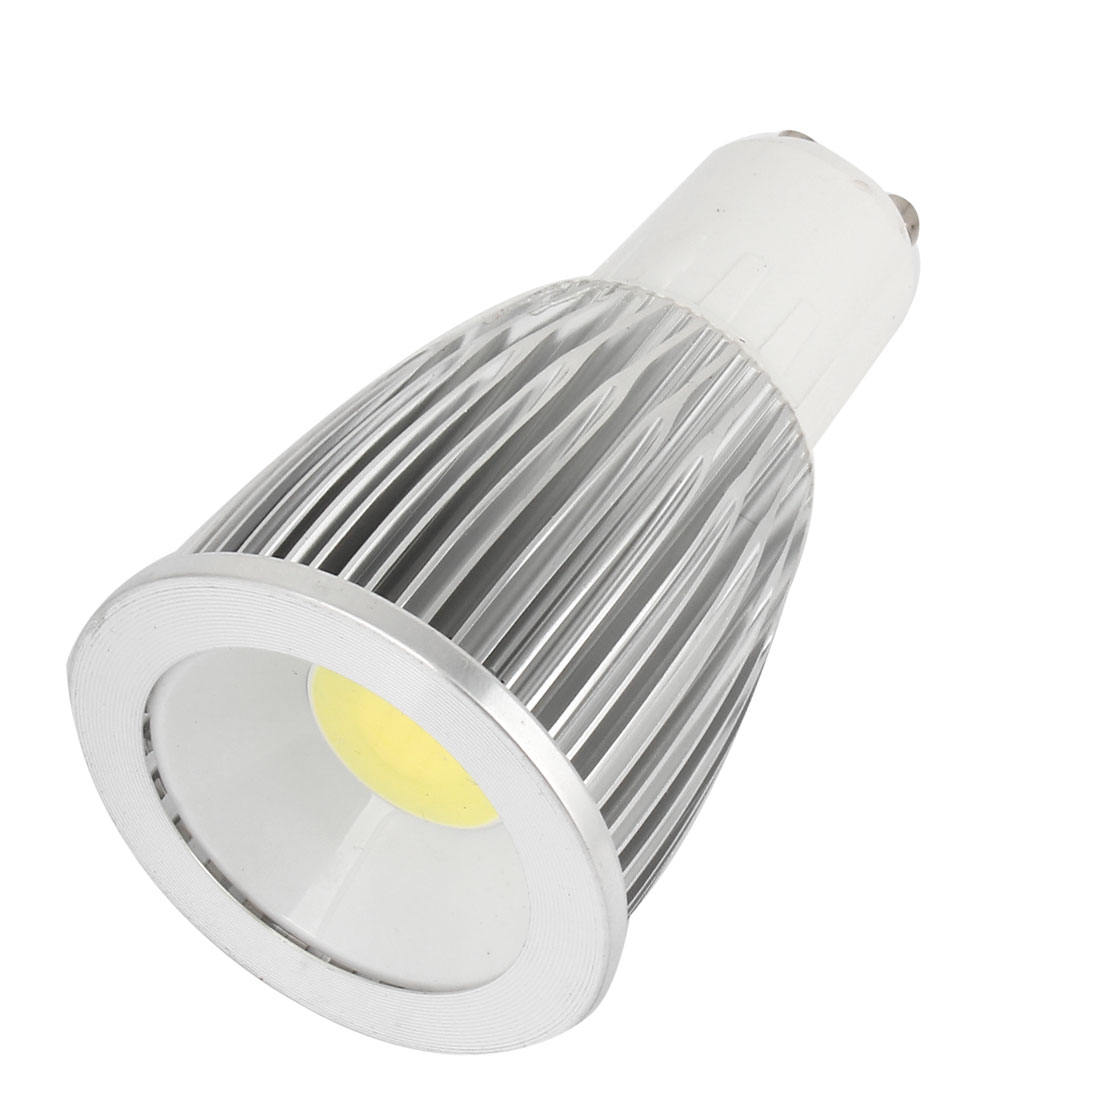 AC 85-265V 12W 840-910LM GU10 Cool White Light COB LED Downlight Spotlight